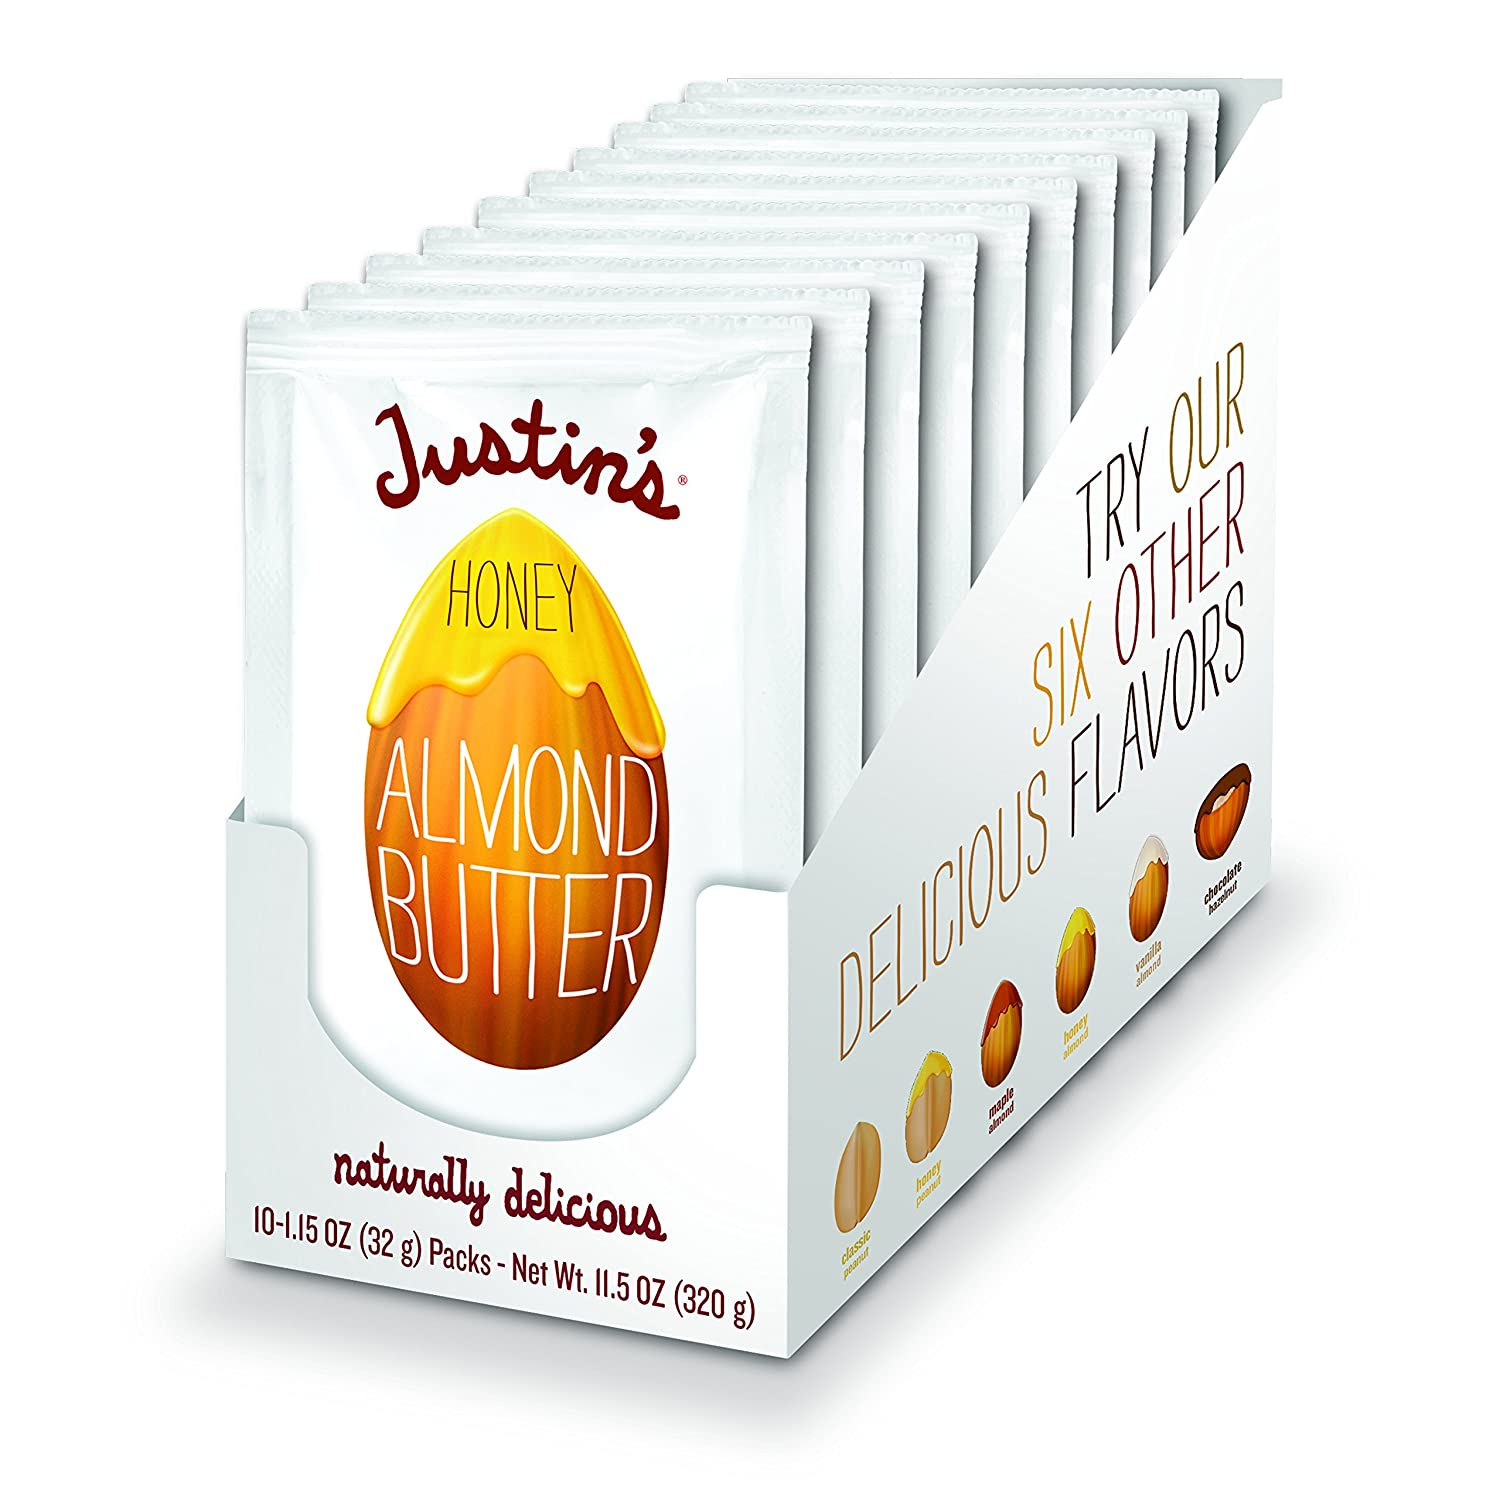 Justin's Honey Almond Butter Squeeze Packs, Gluten-free, Non-GMO, Responsibly Sourced, Pack of 10 (1.15oz each)